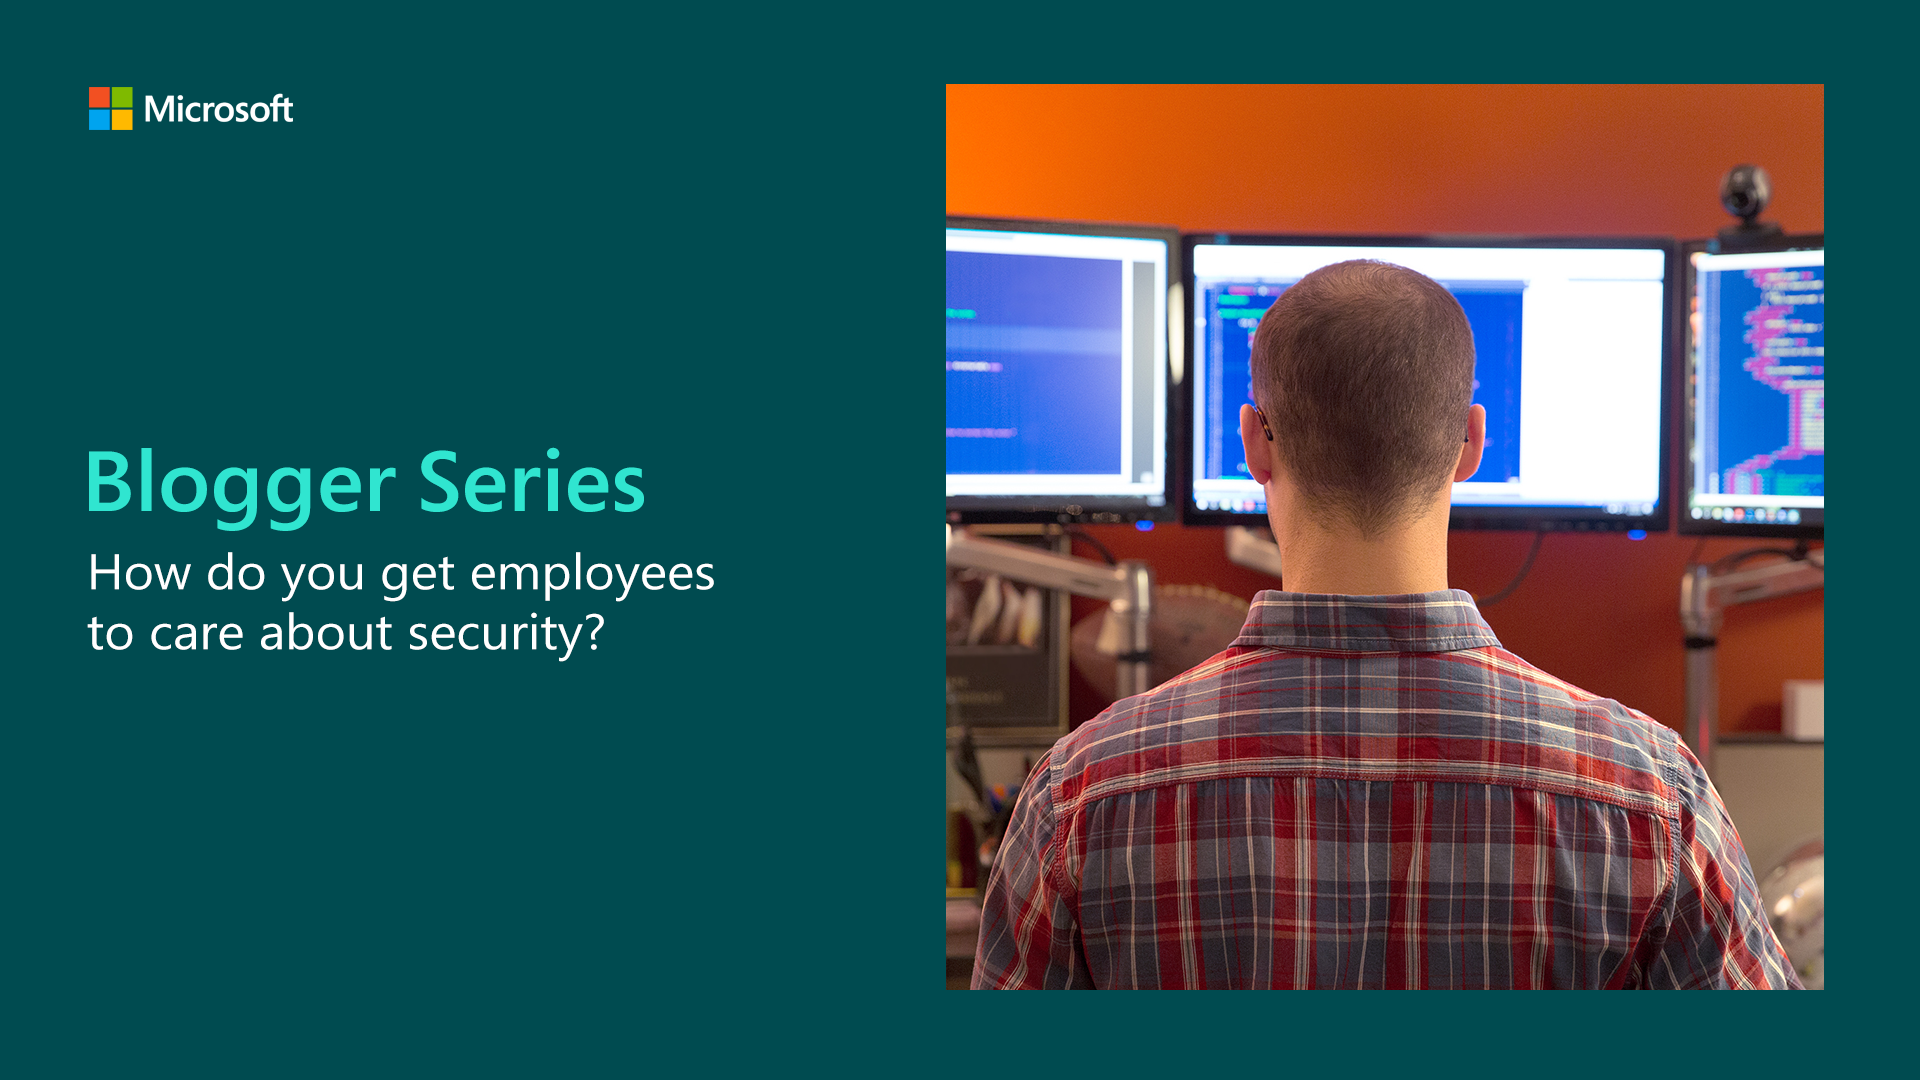 How do you get employees to care about security? - Microsoft